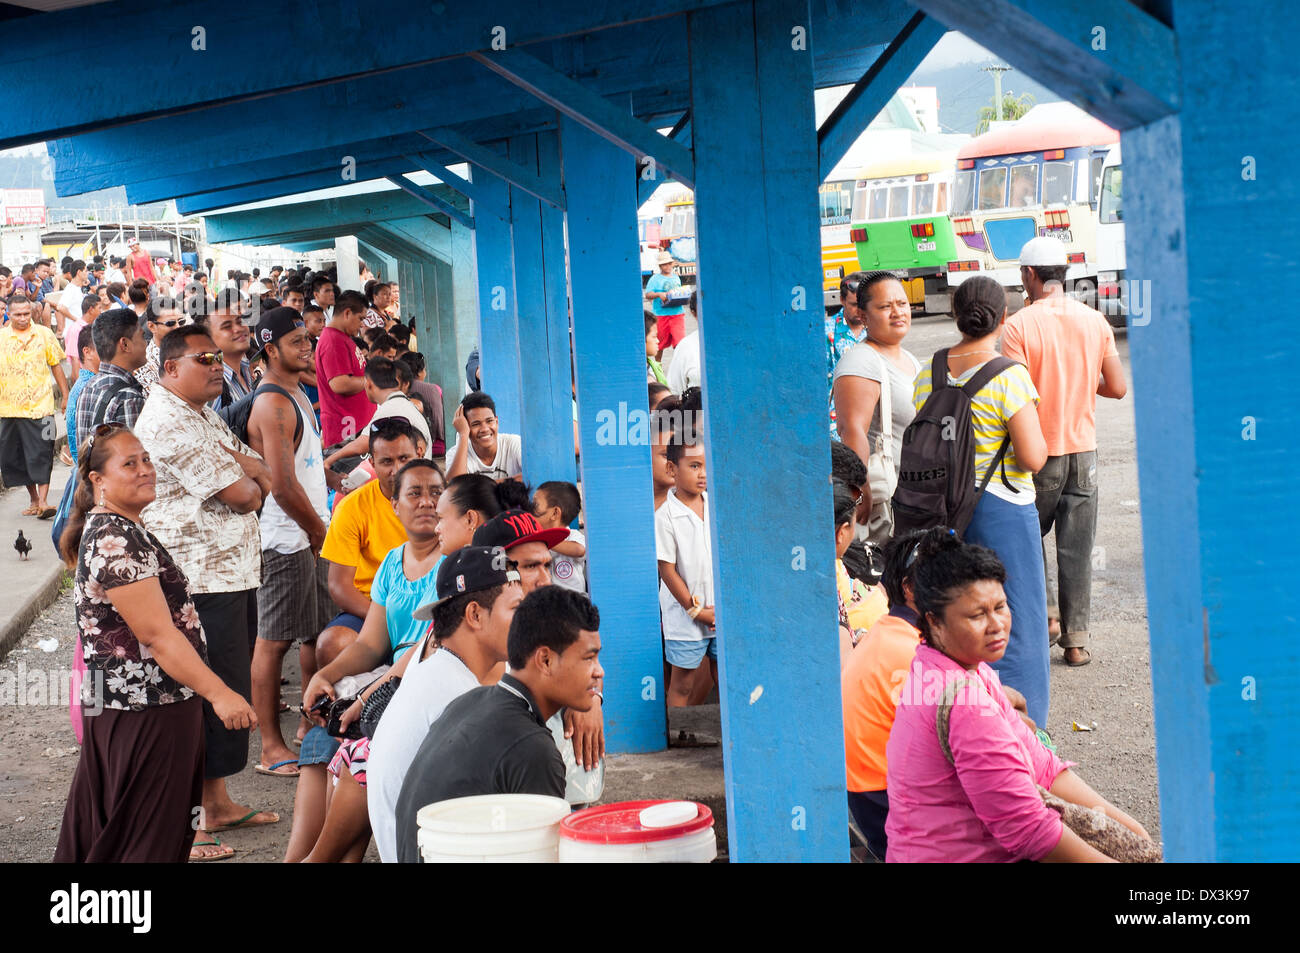 Central Bus Station with waiting passengers, town Center, Apia, Samoa - Stock Image